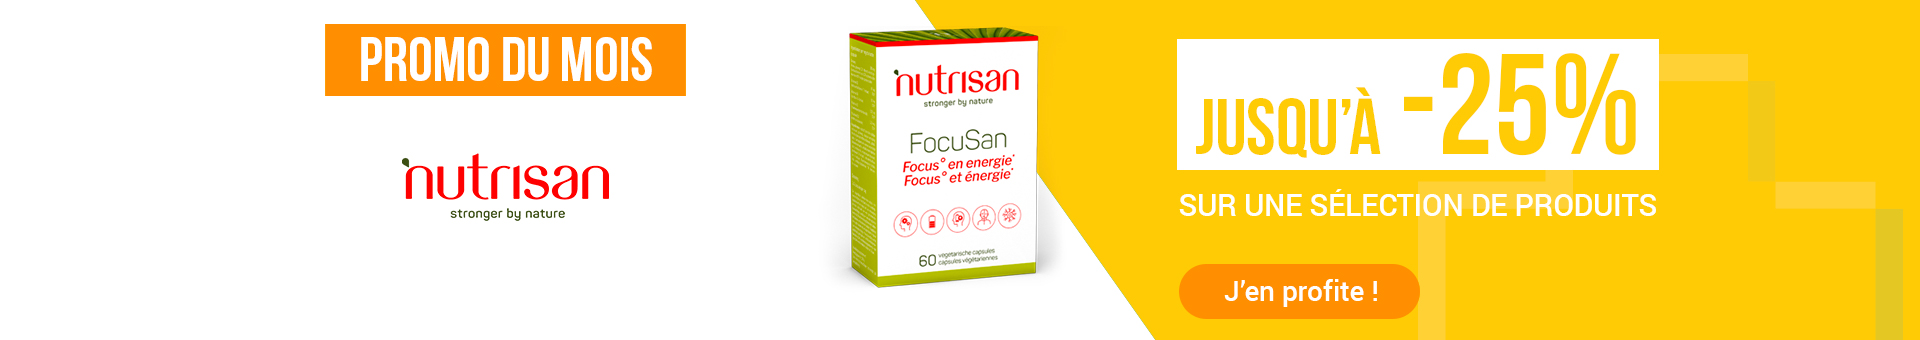 shop-pc-04-2020-nutrisan-focusan-mobile-fr.jpg